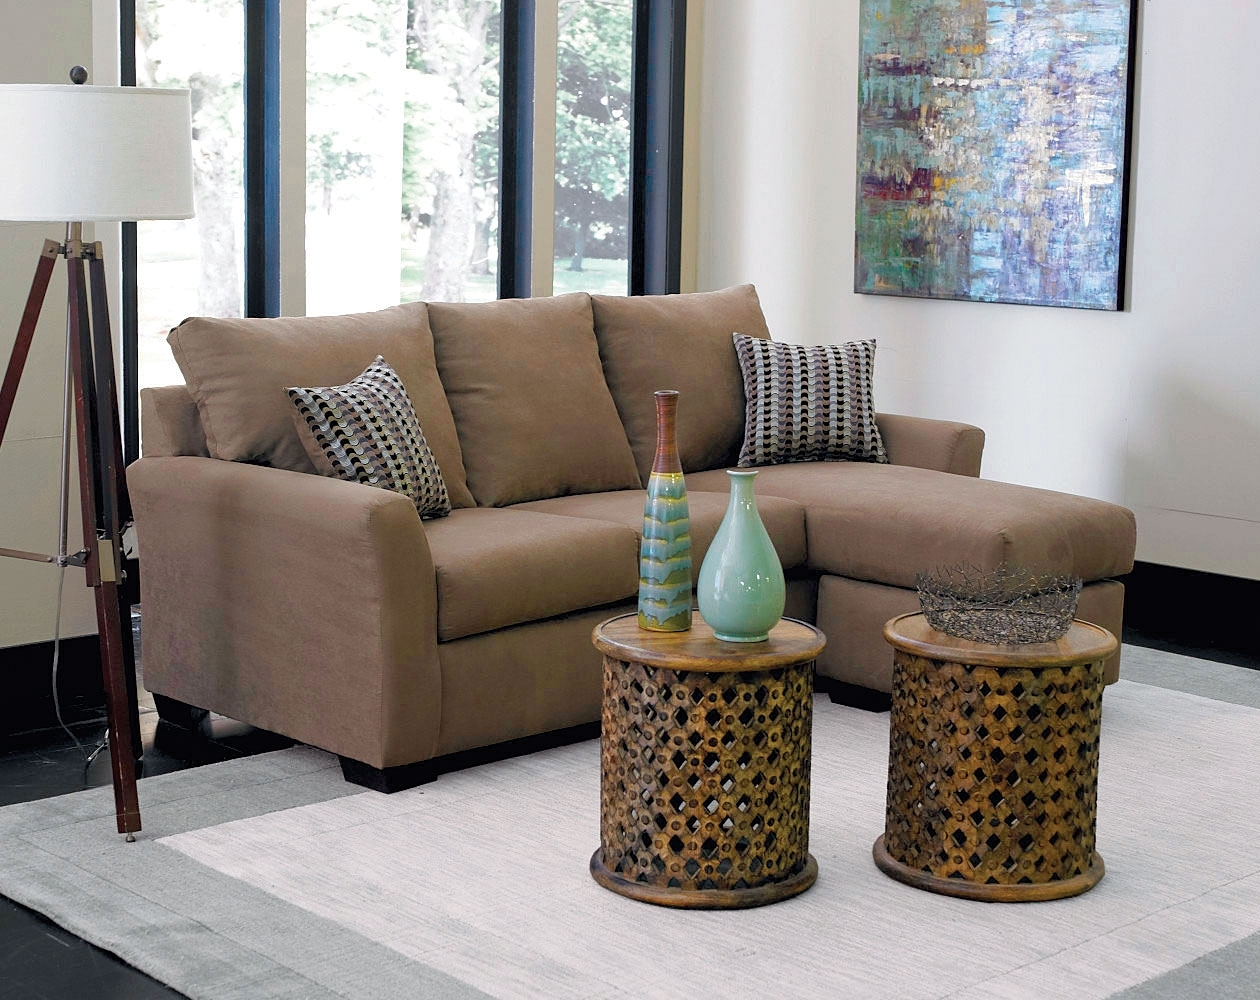 Stupendous American Furniture Near Me Nice Decoration American Throughout Gilbert Az Sectional Sofas (View 9 of 10)